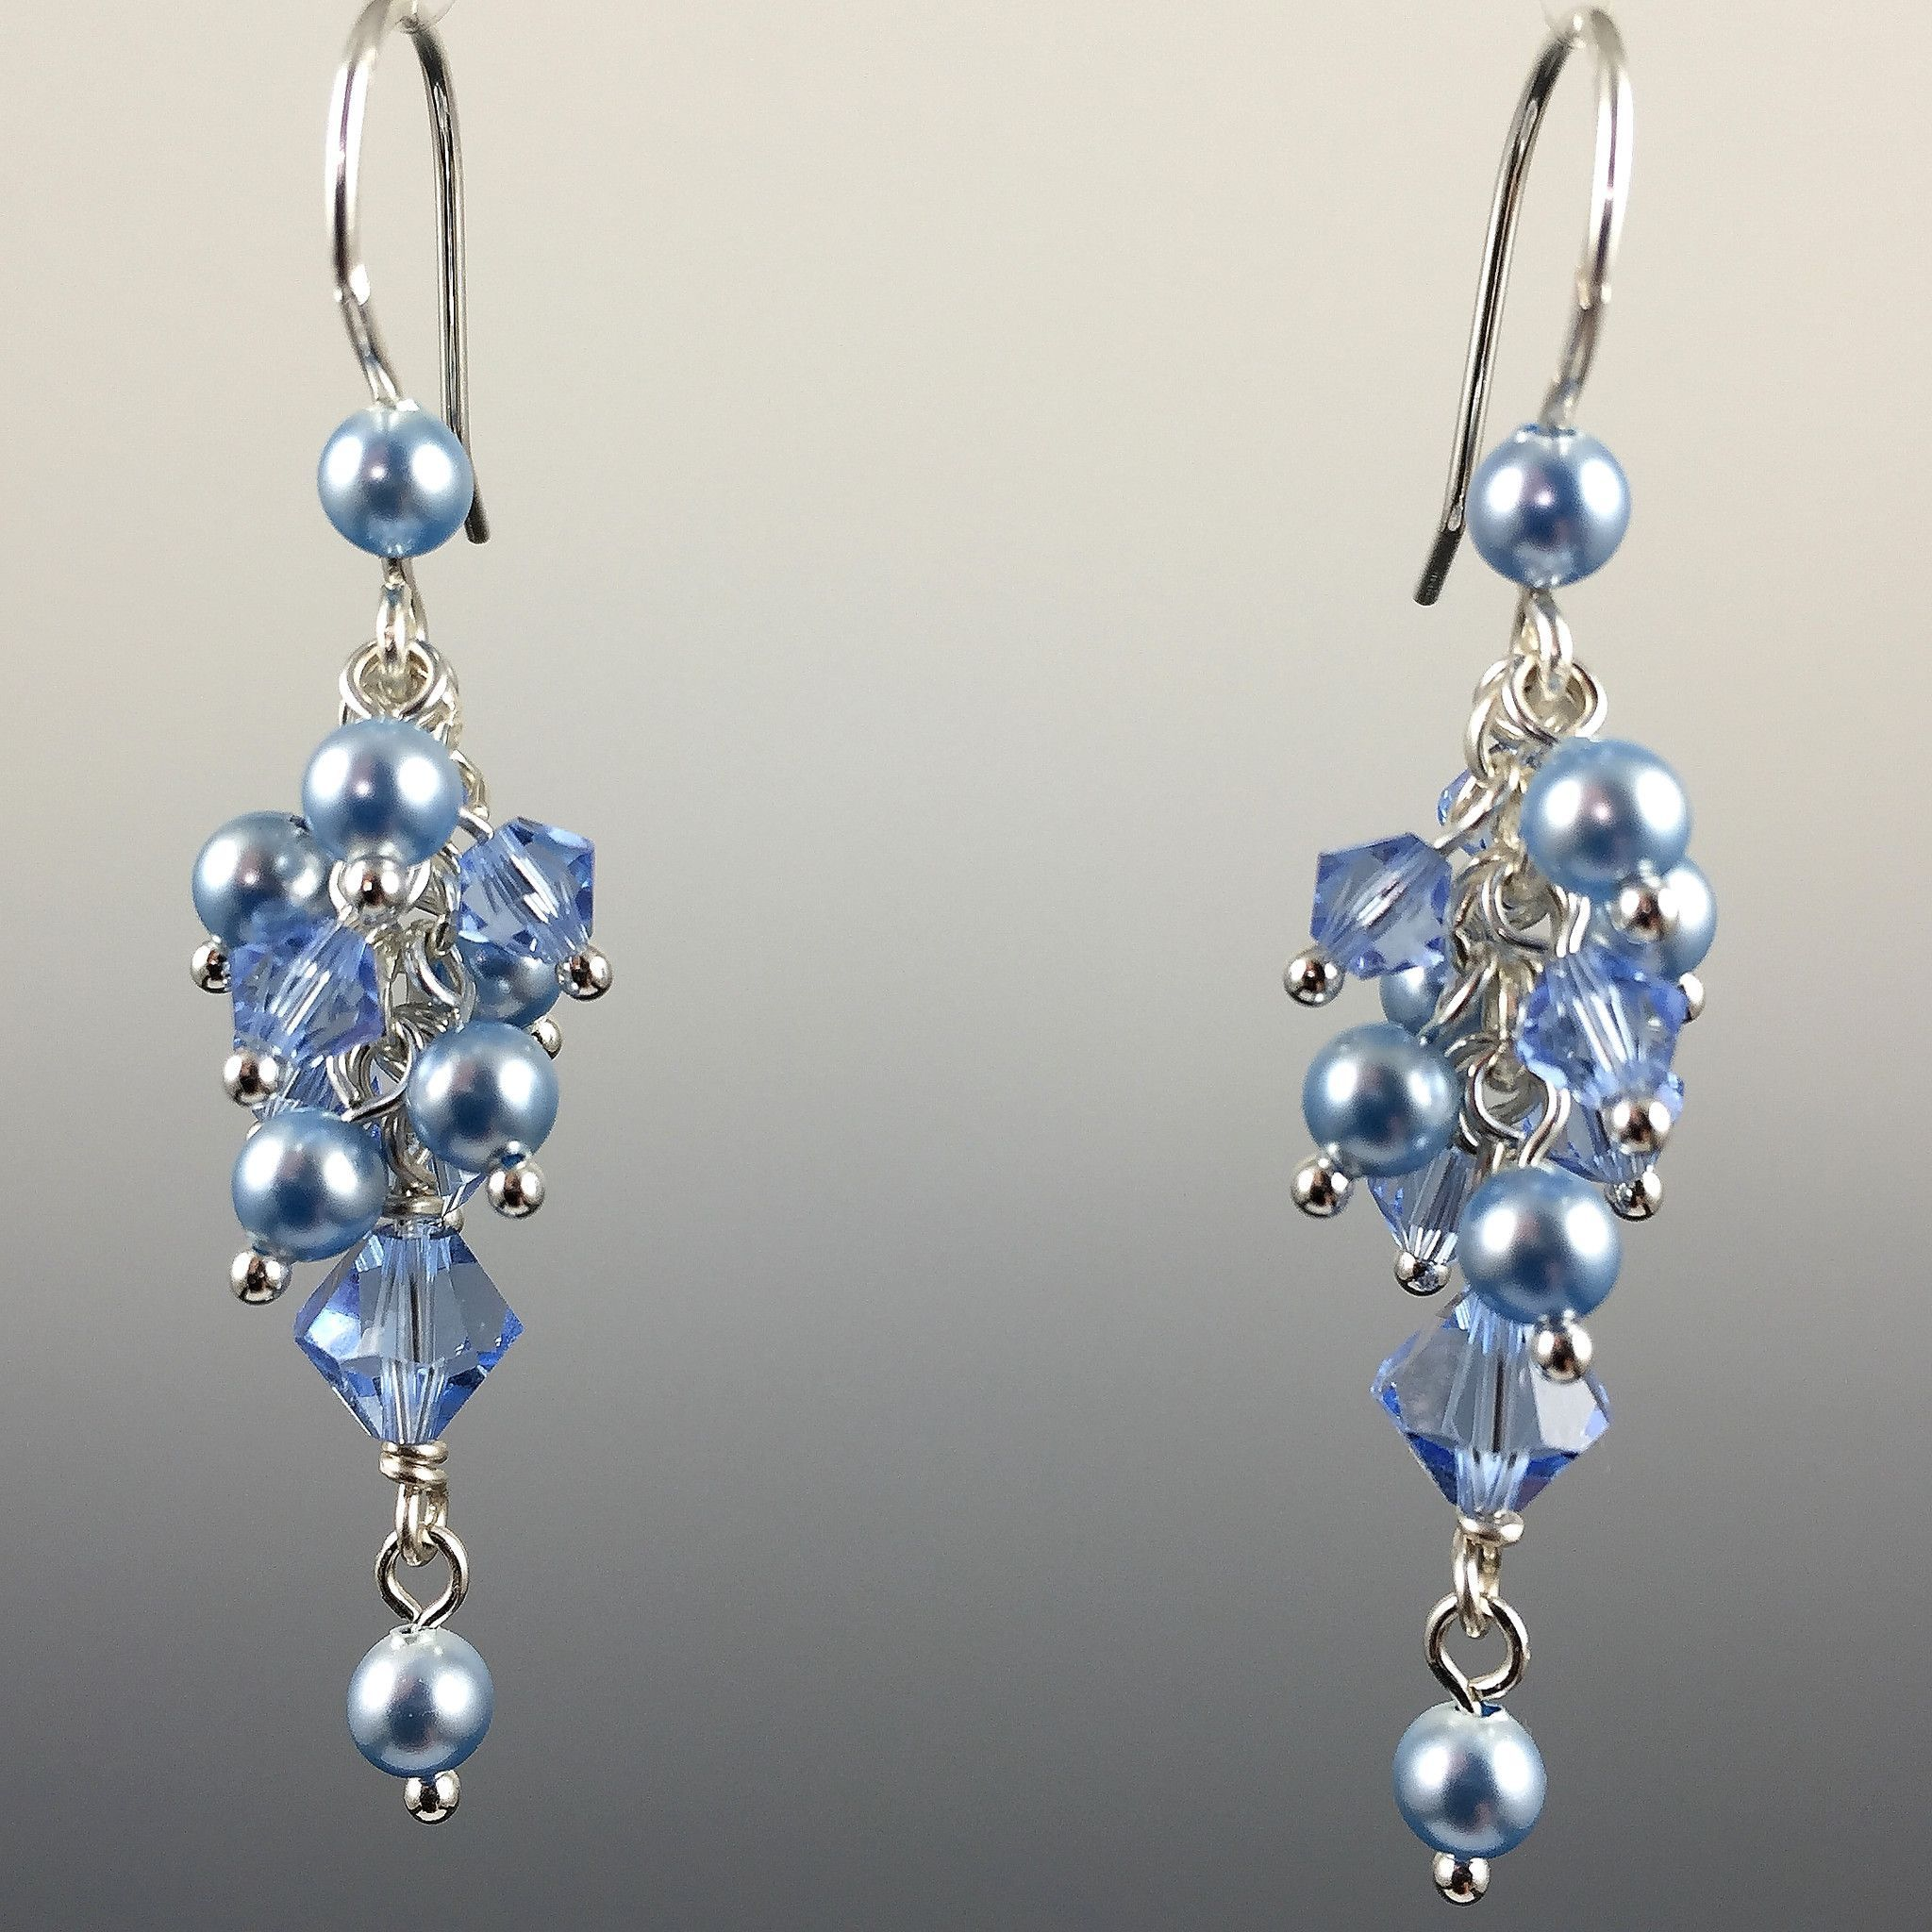 Swarovski Crystal & Sterling Silver Cluster Earrings ...